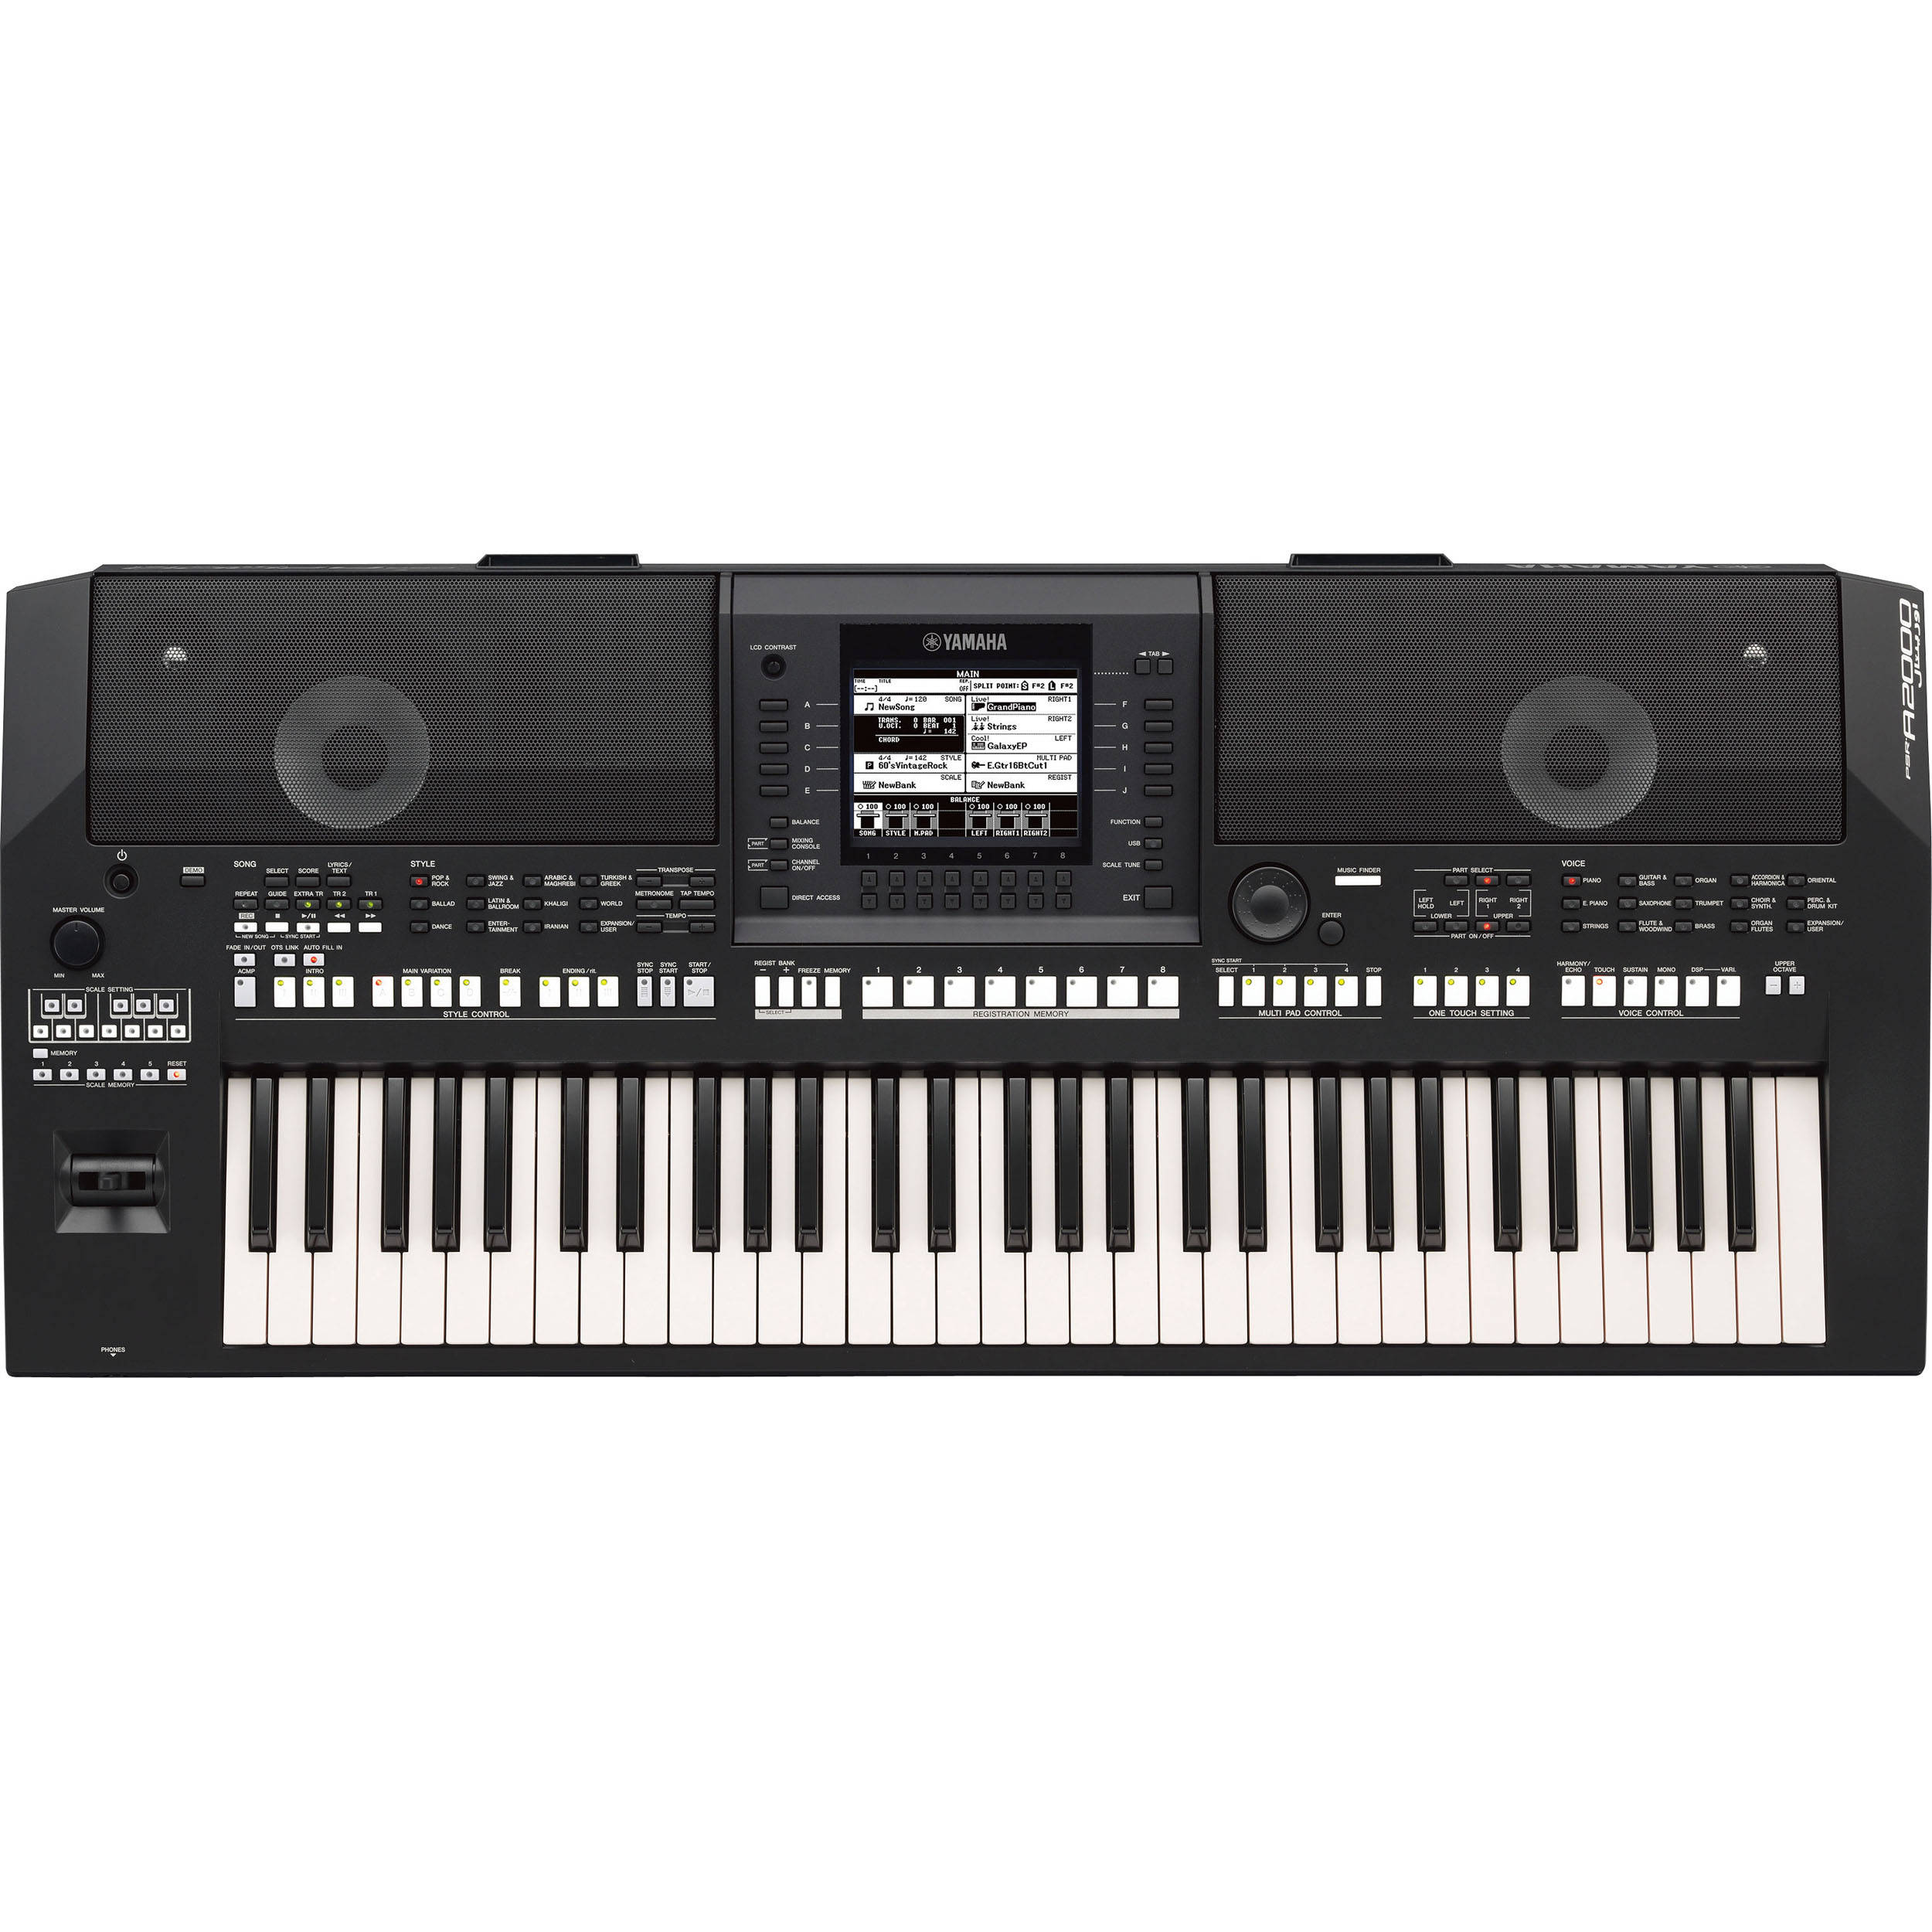 Latest Yamaha Keyboard Workstation : yamaha psr a2000 61 key arranger workstation keyboard psra2000 ~ Russianpoet.info Haus und Dekorationen